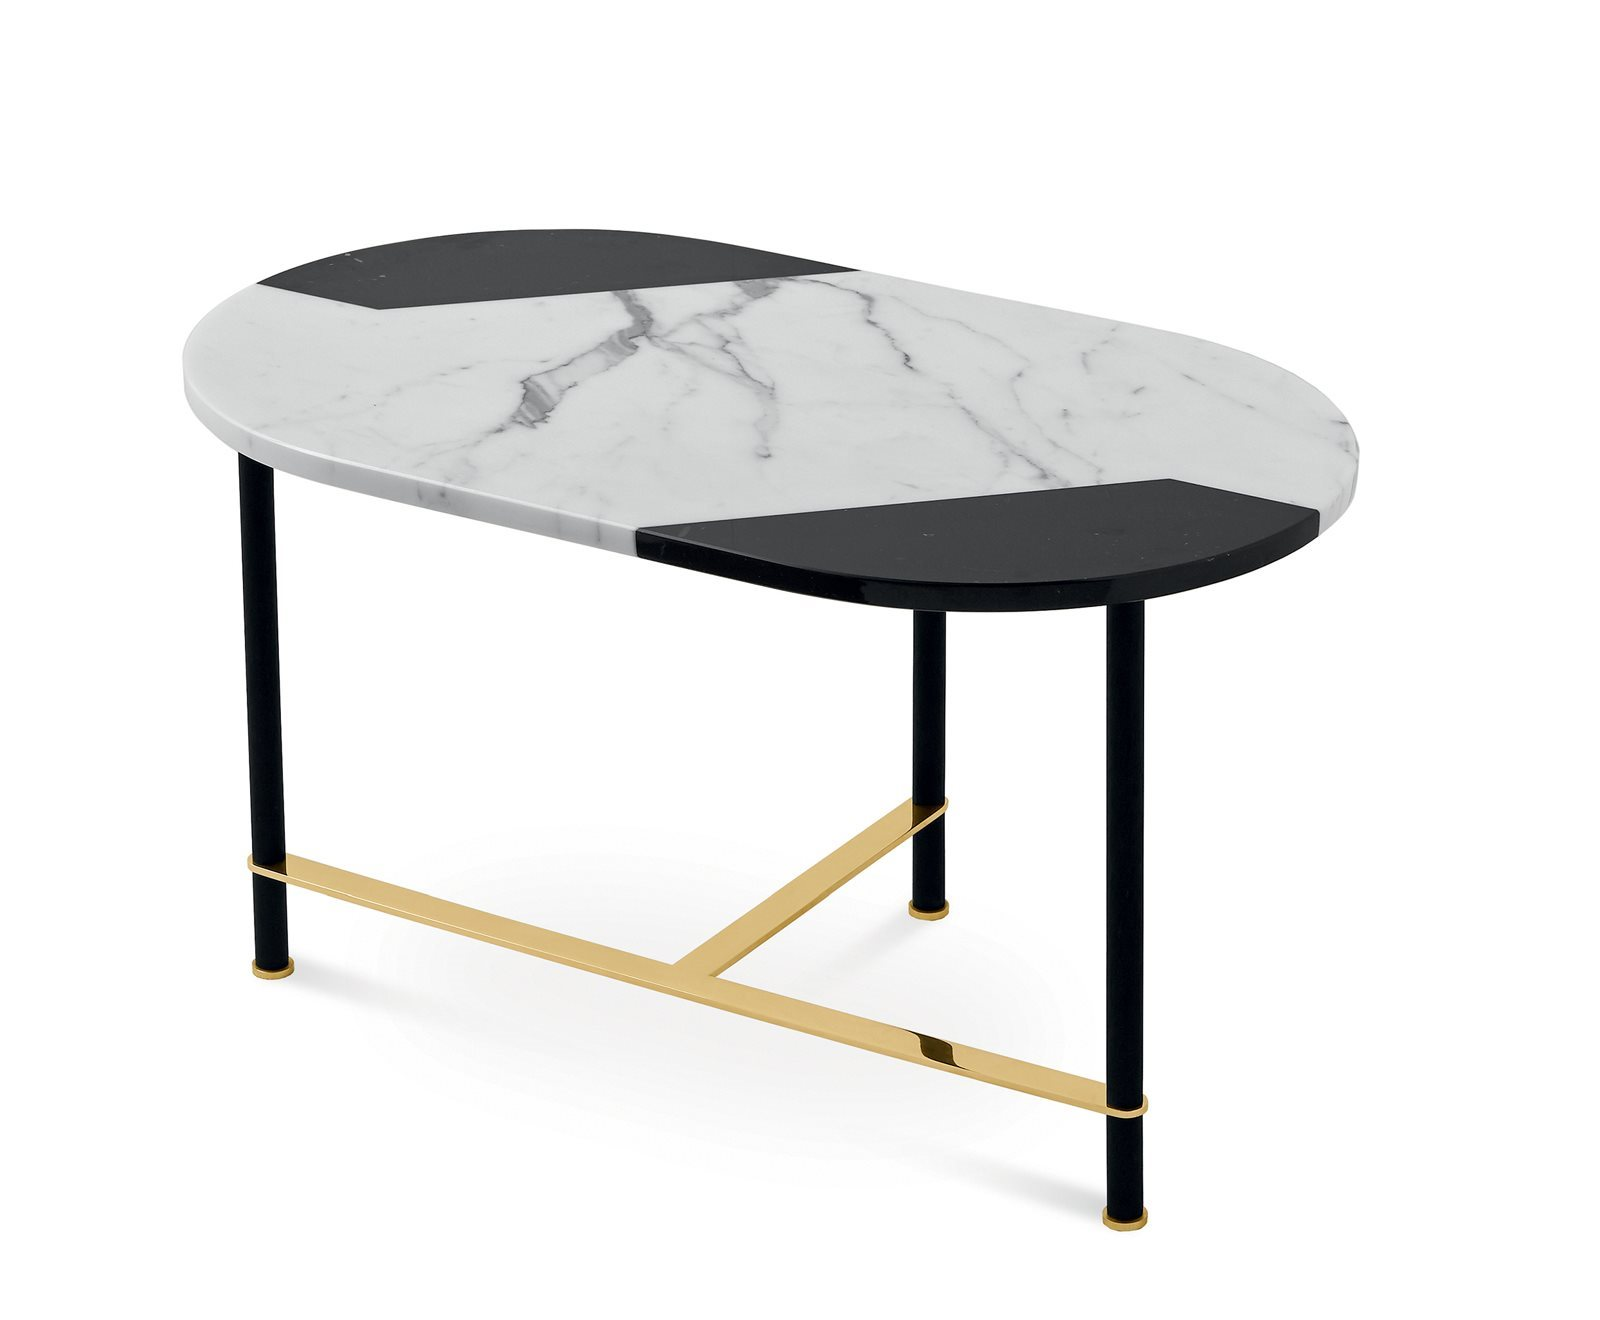 Gallotti radice cookies coffee table buy from campbell watson uk Coffee table buy